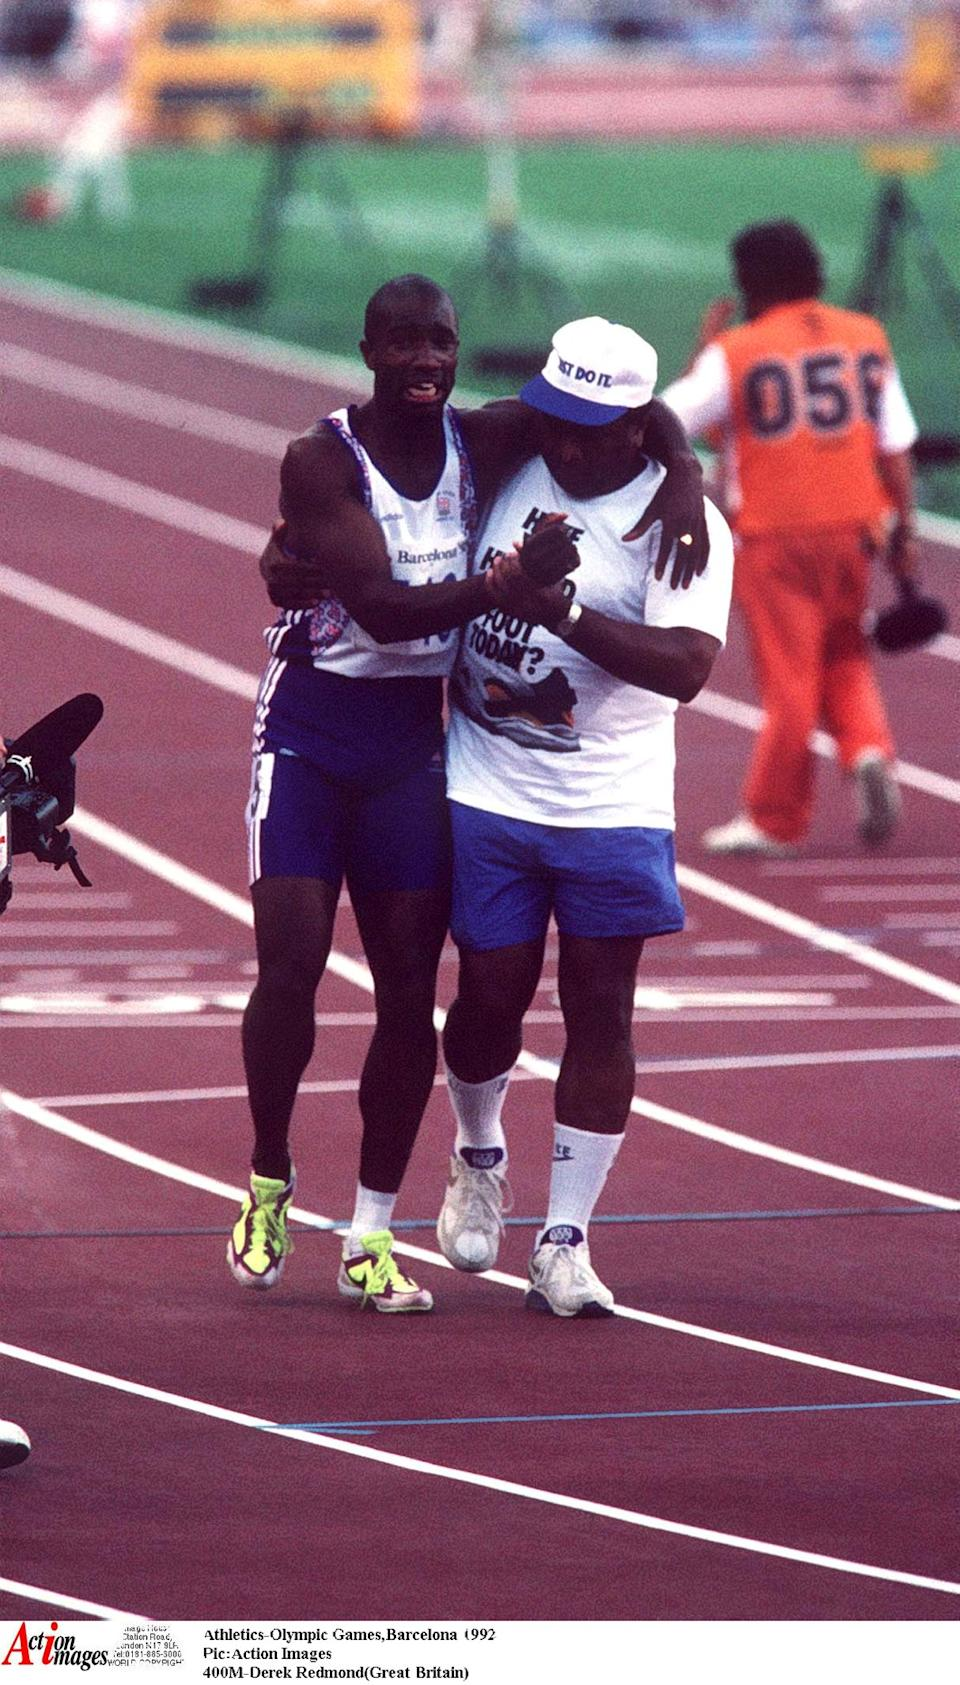 Athletics - 1992 Olympic Games, Barcelona, Spain  Pic:Action Images  400M - Derek Redmond (Great Britain) is helped to the finish by his dad